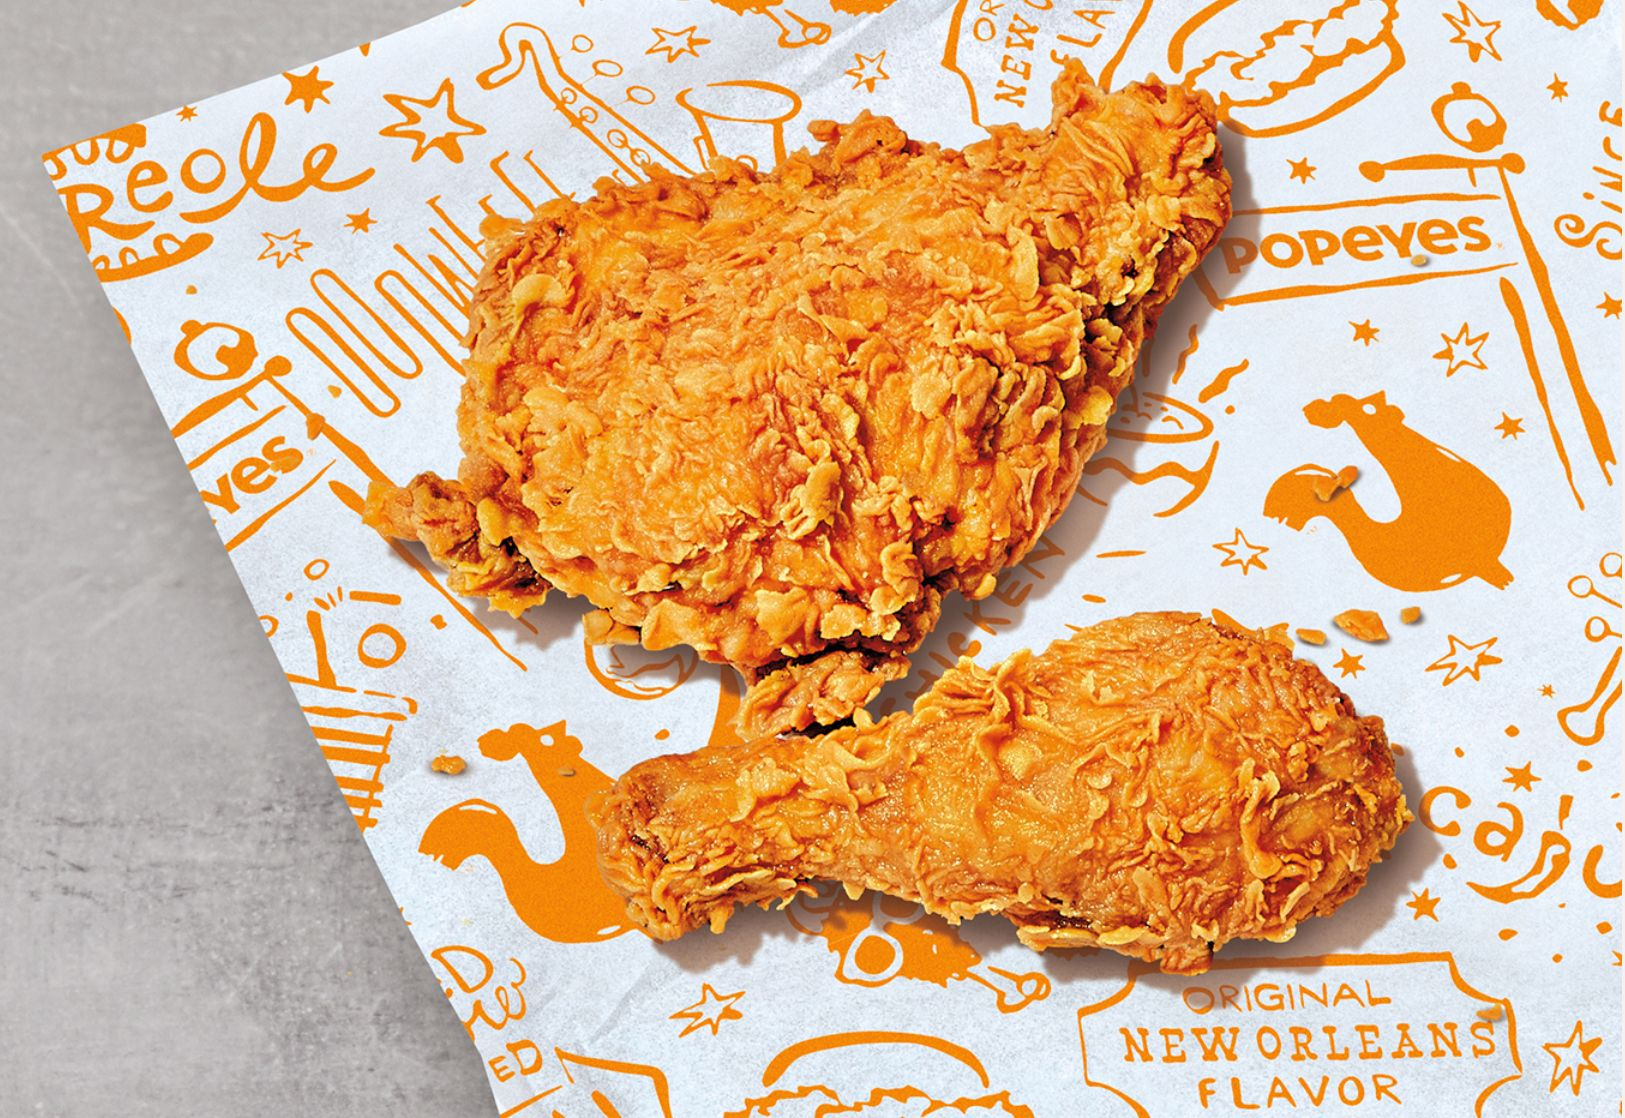 Get 2 Pieces of Popeyes' Classic Bone In Chicken for Free with Your First $10+ Digital Order for a Limited Time